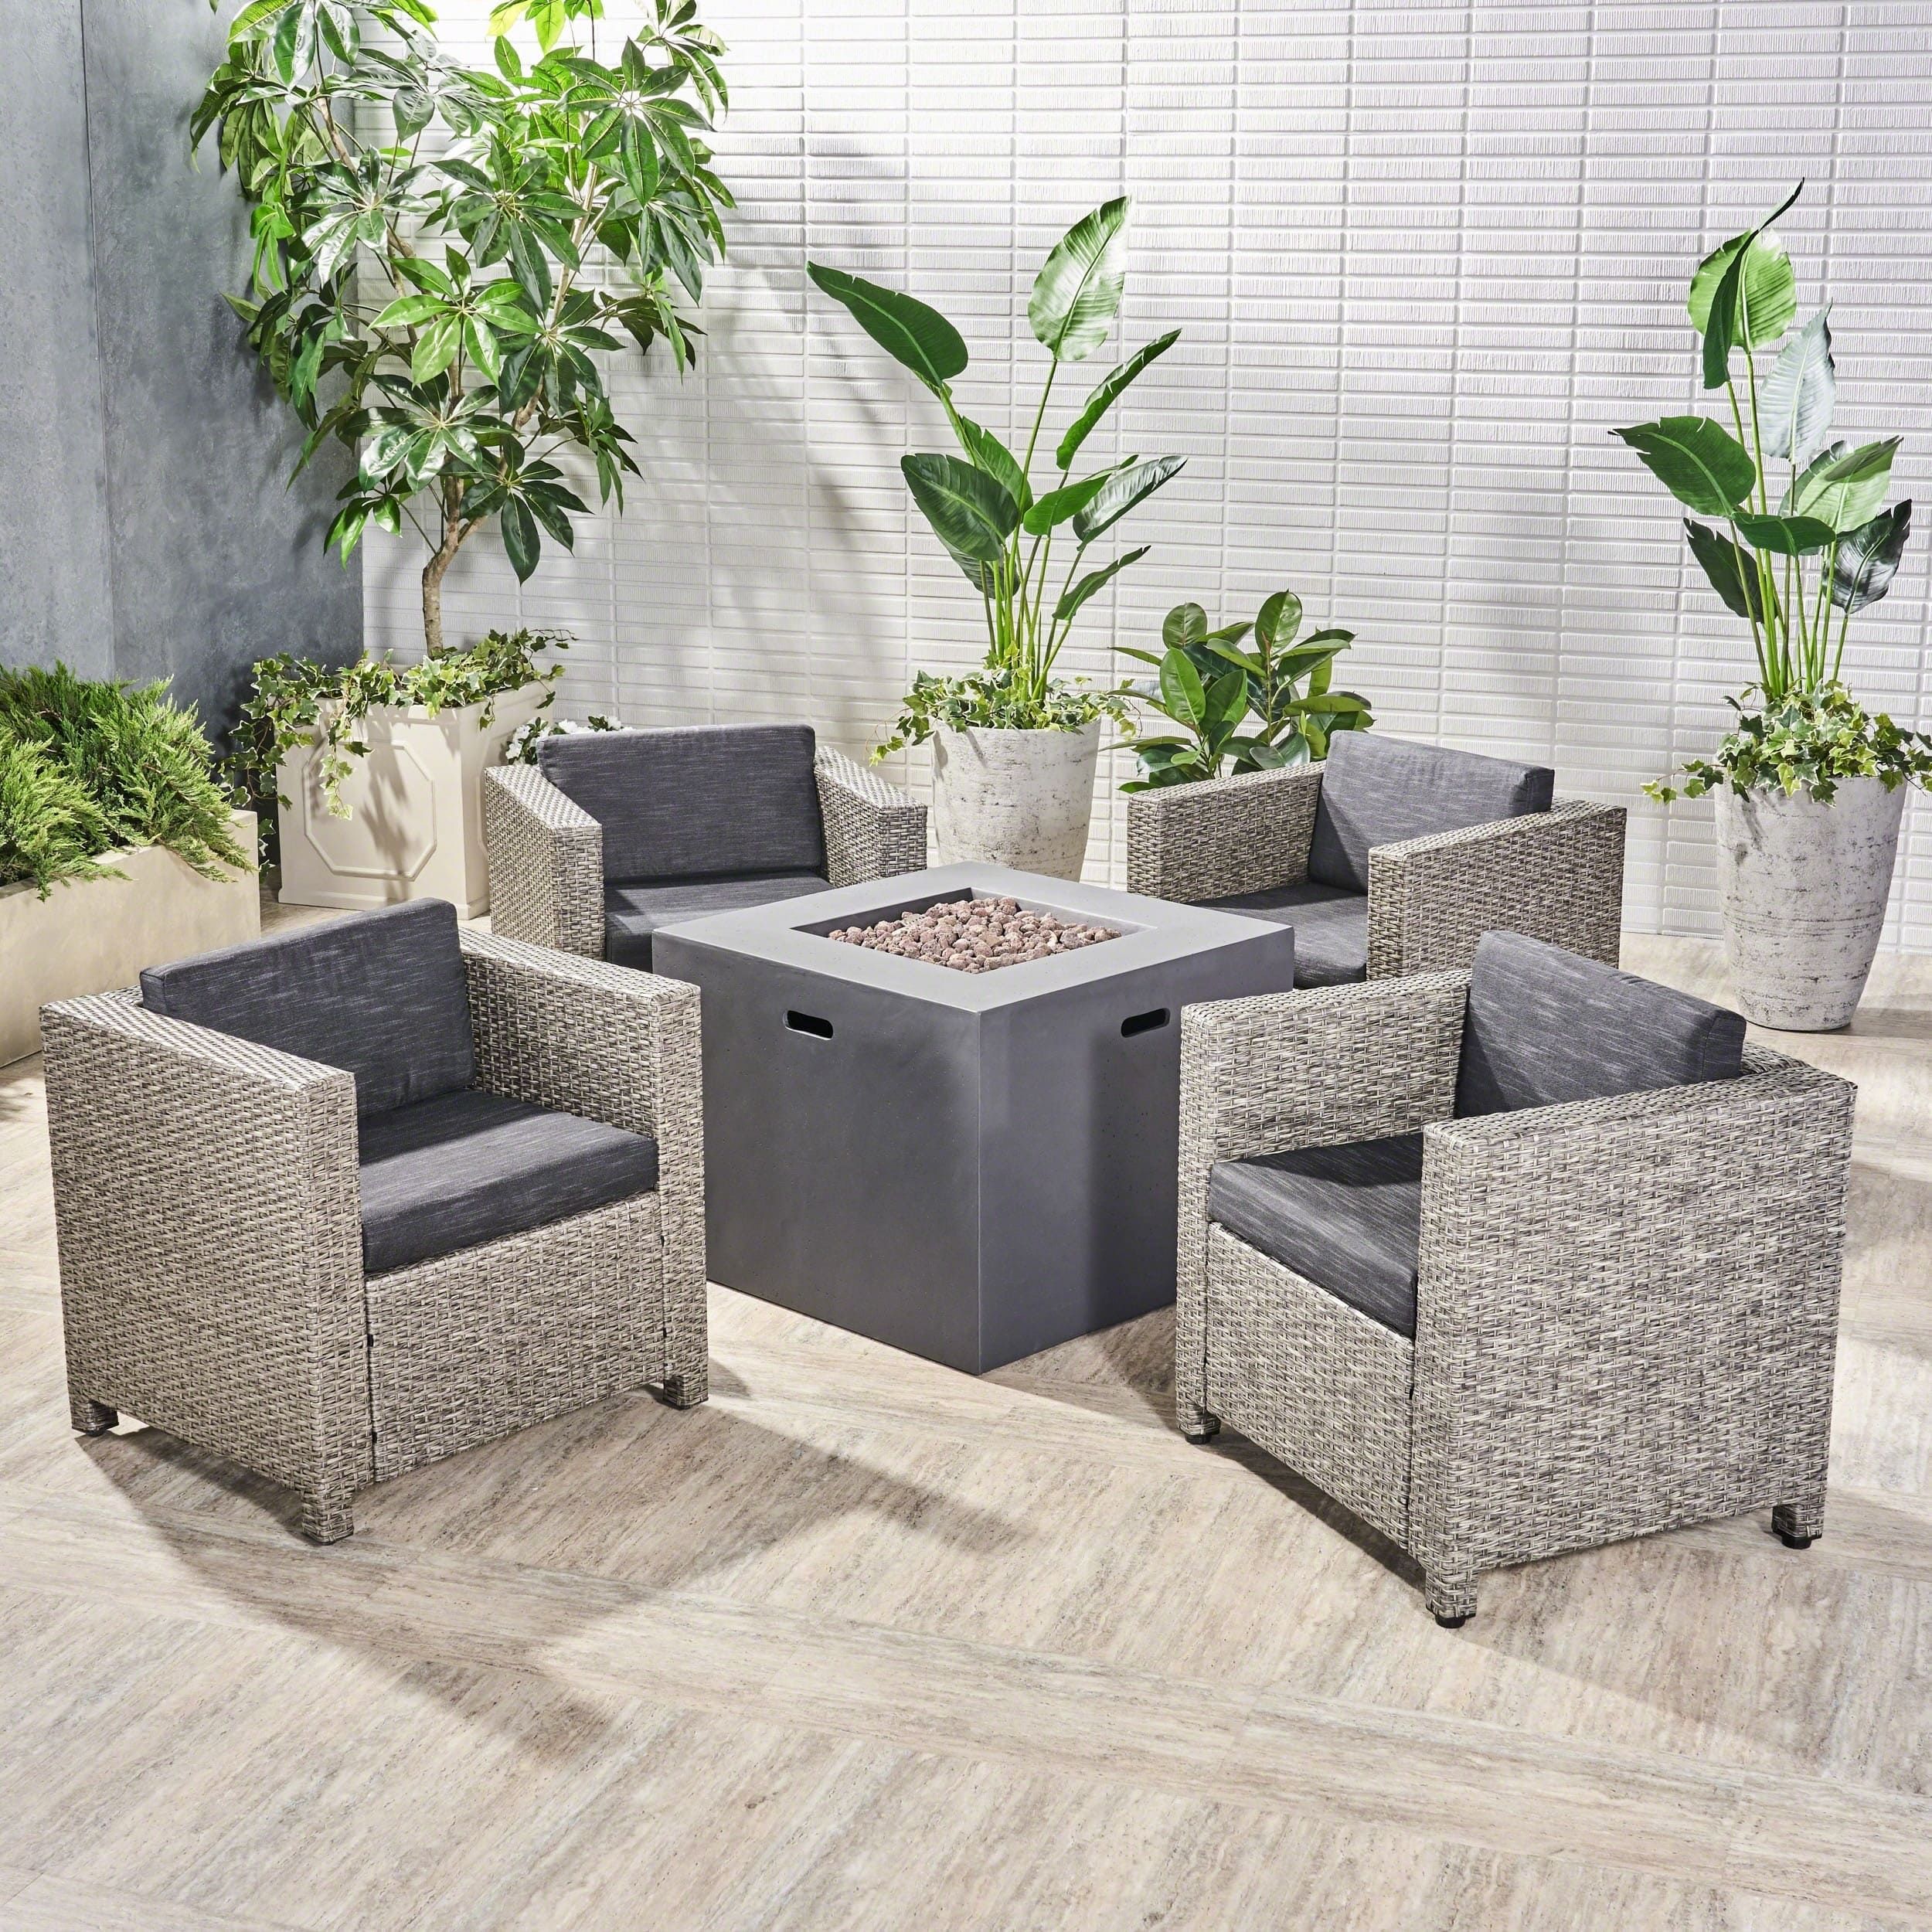 Christopher Knight Home Maxwell Outdoor 4 Piece Club Chair Set with Square Fire Pit by